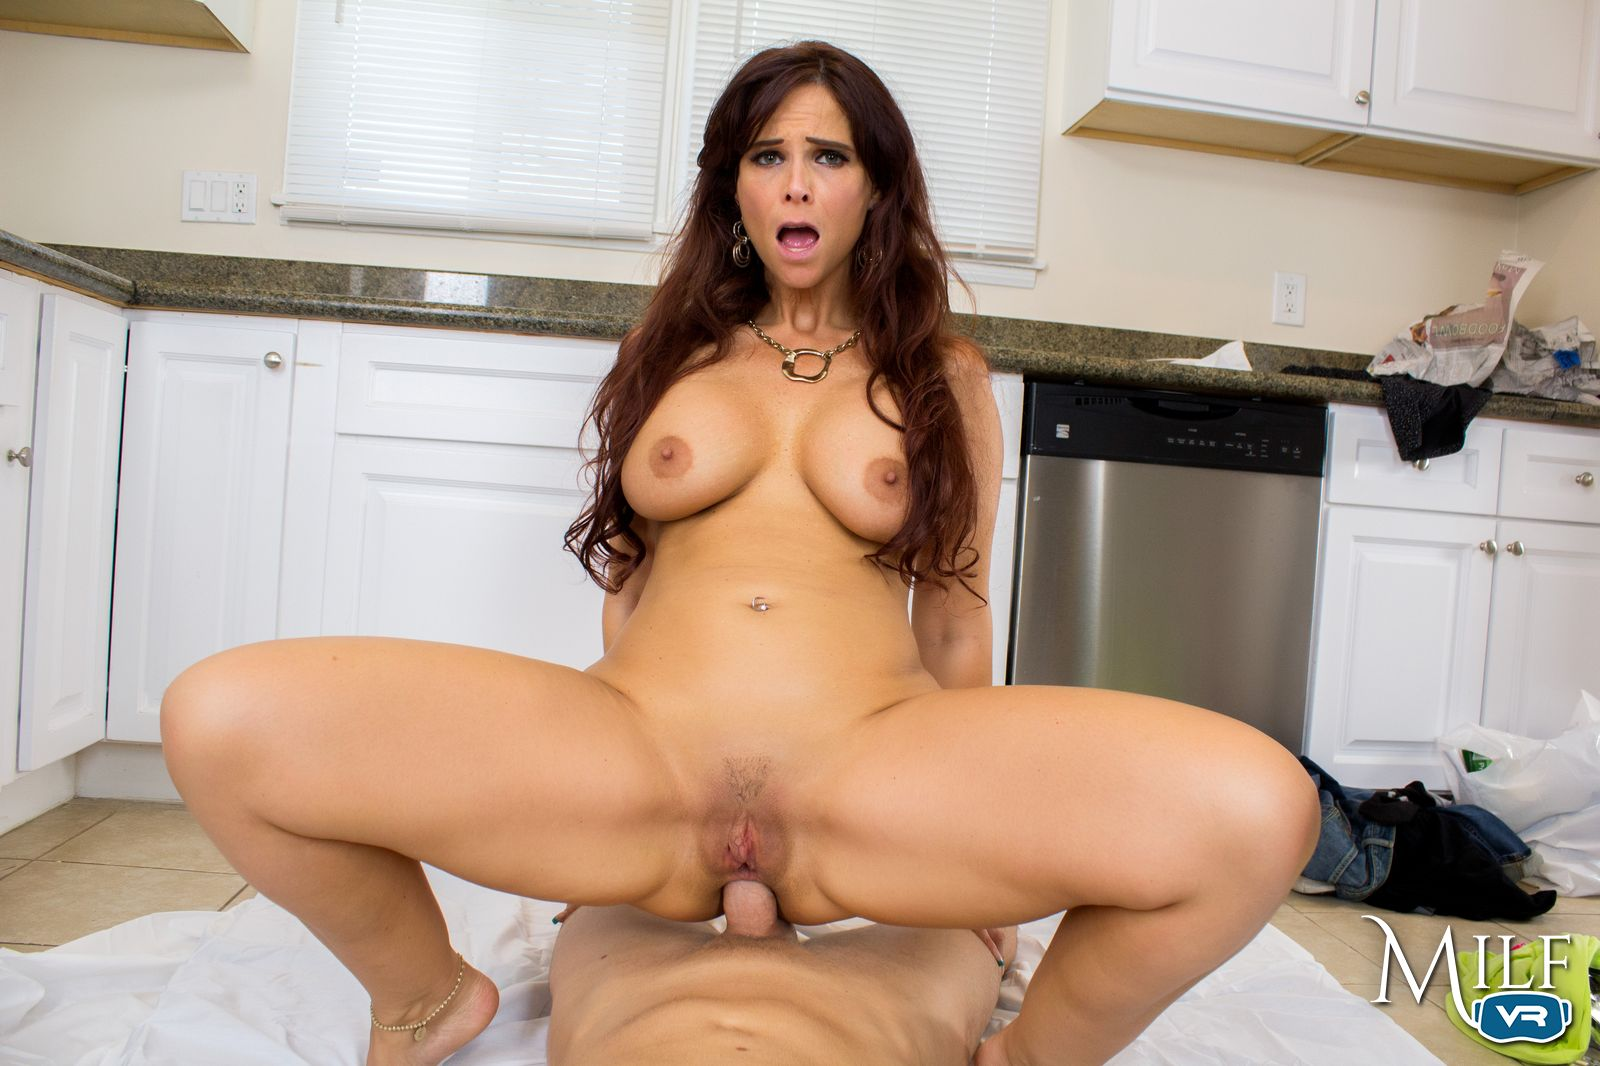 Experienced Cougar Syren De Mar Wants Your Big Tool Inside Her Tight Ass In This Milf Vr Anal Sex Video